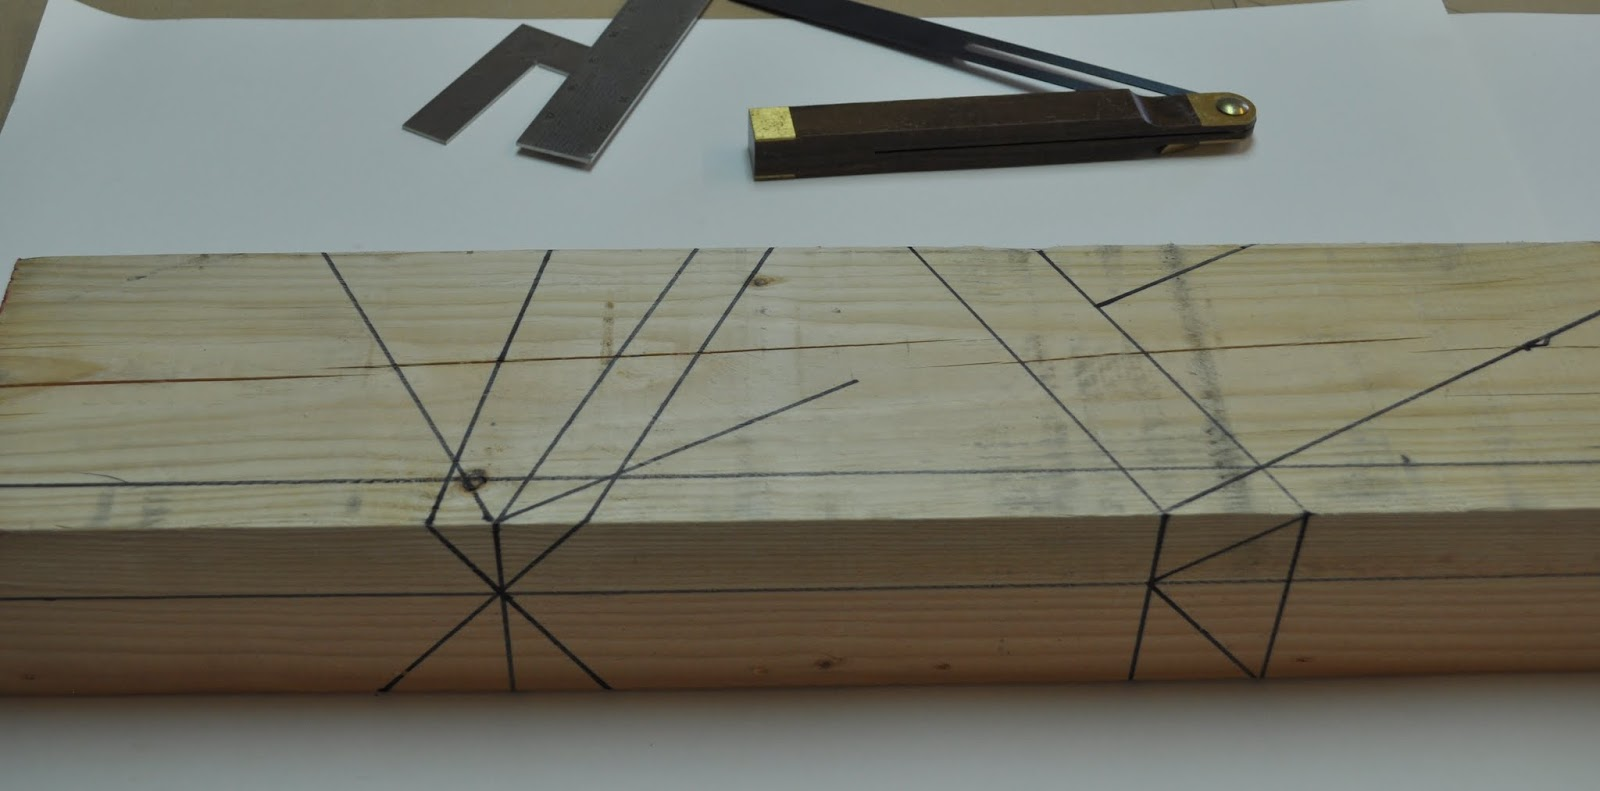 Roof Framing Geometry How To Precisely Layout An